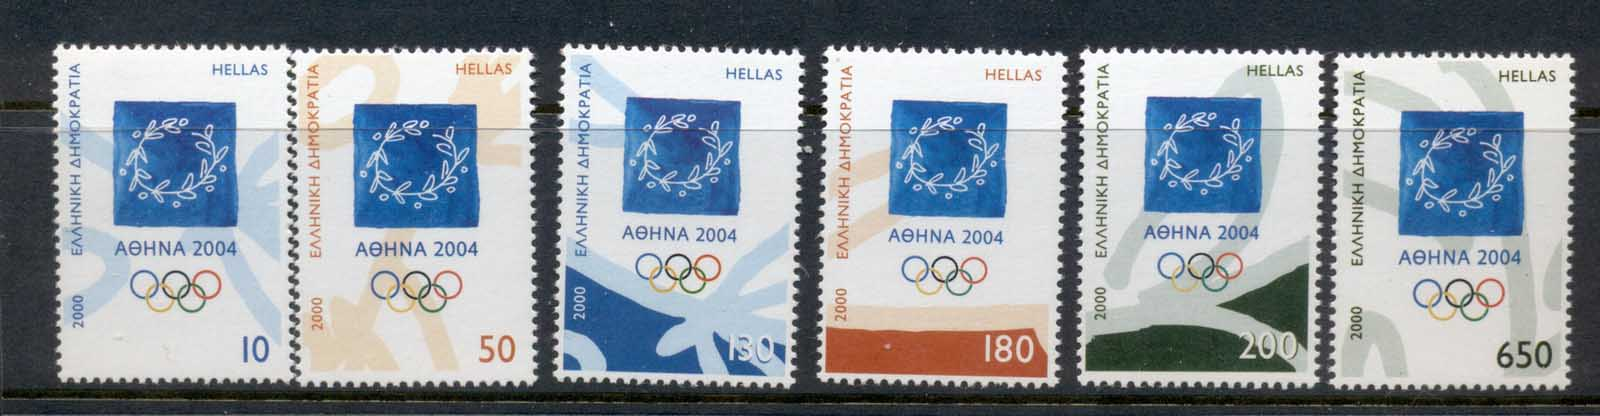 Greece 2000 Olympic Emblem, Athens MUH